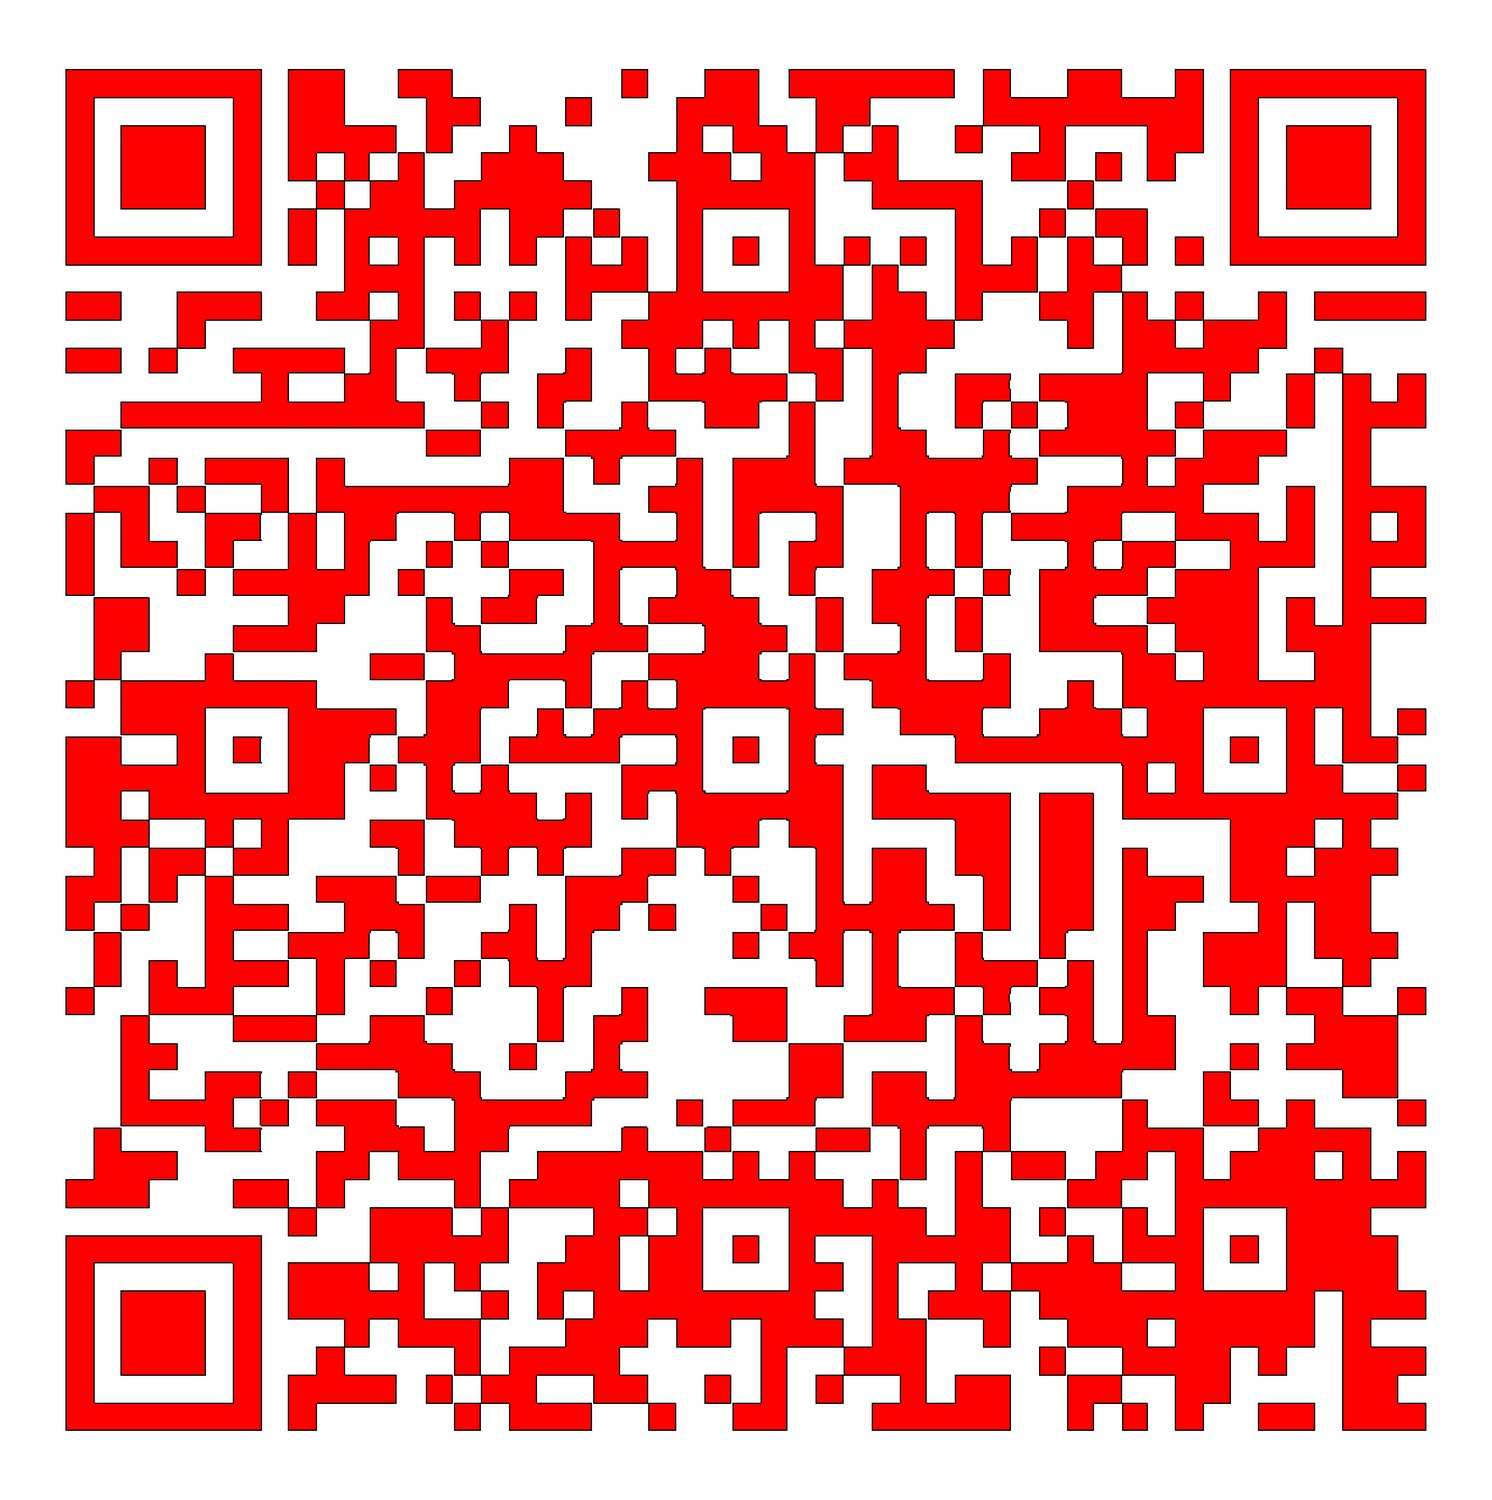 Valentine - QR Code -contains poem with formatting and a link - This QR code contains a poem and a link - Tony Karp, design, art, photography, techno-impressionist, techno-impressionism, aerial photography , drone , drones , dji , mavic pro , video , 3D printing - Books -